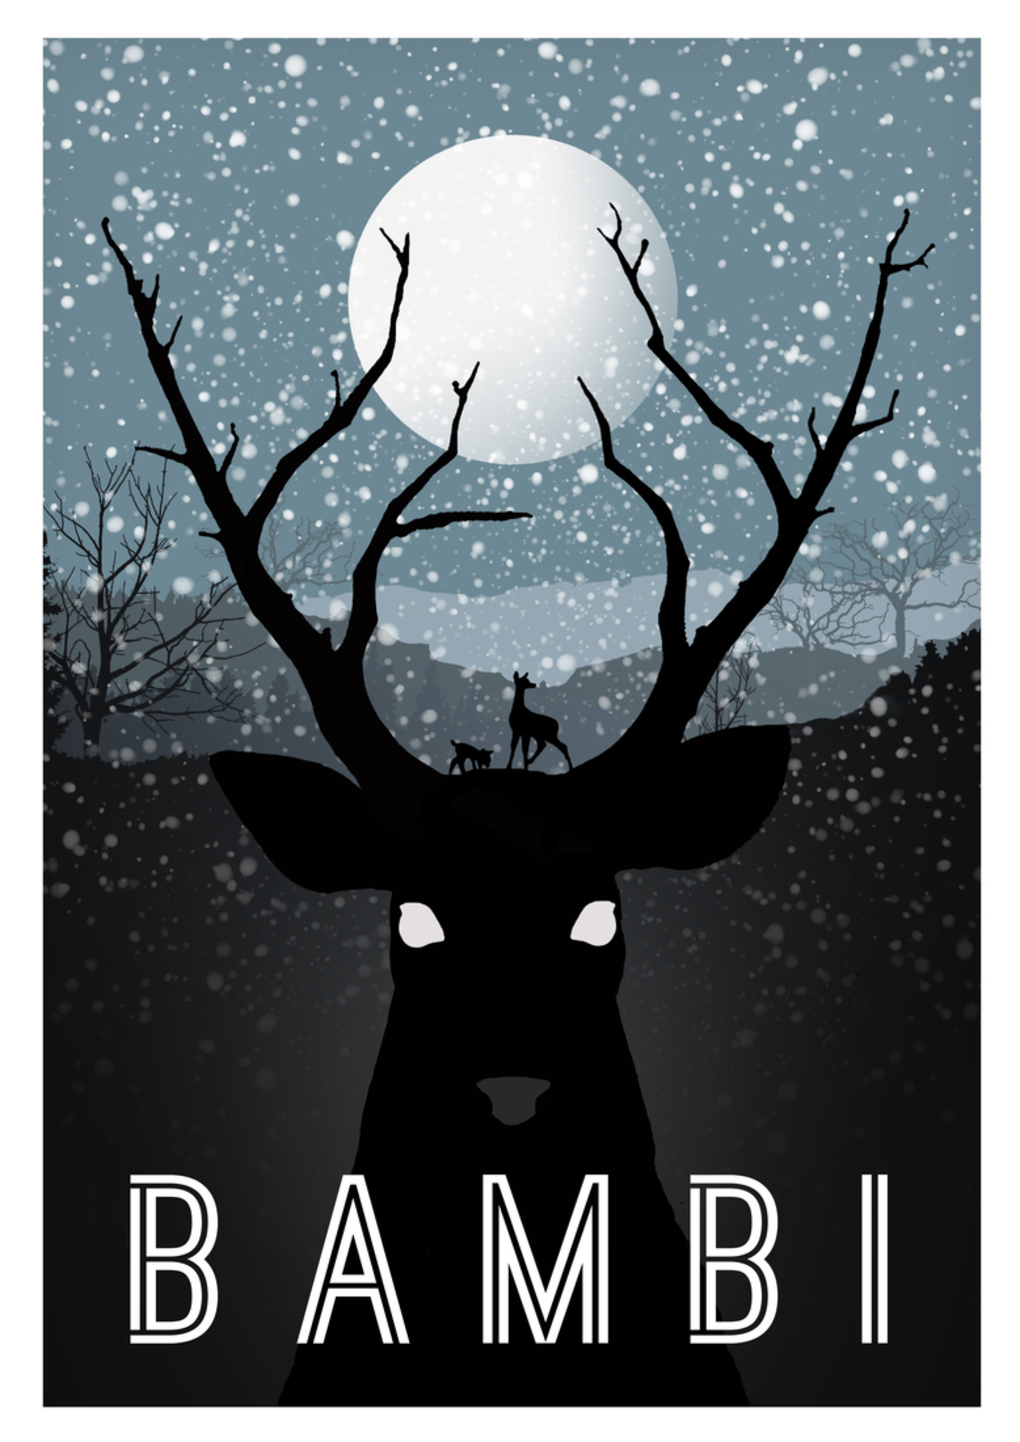 Bambi_-_Rowan-Stocks_Moore_verge_super_wide